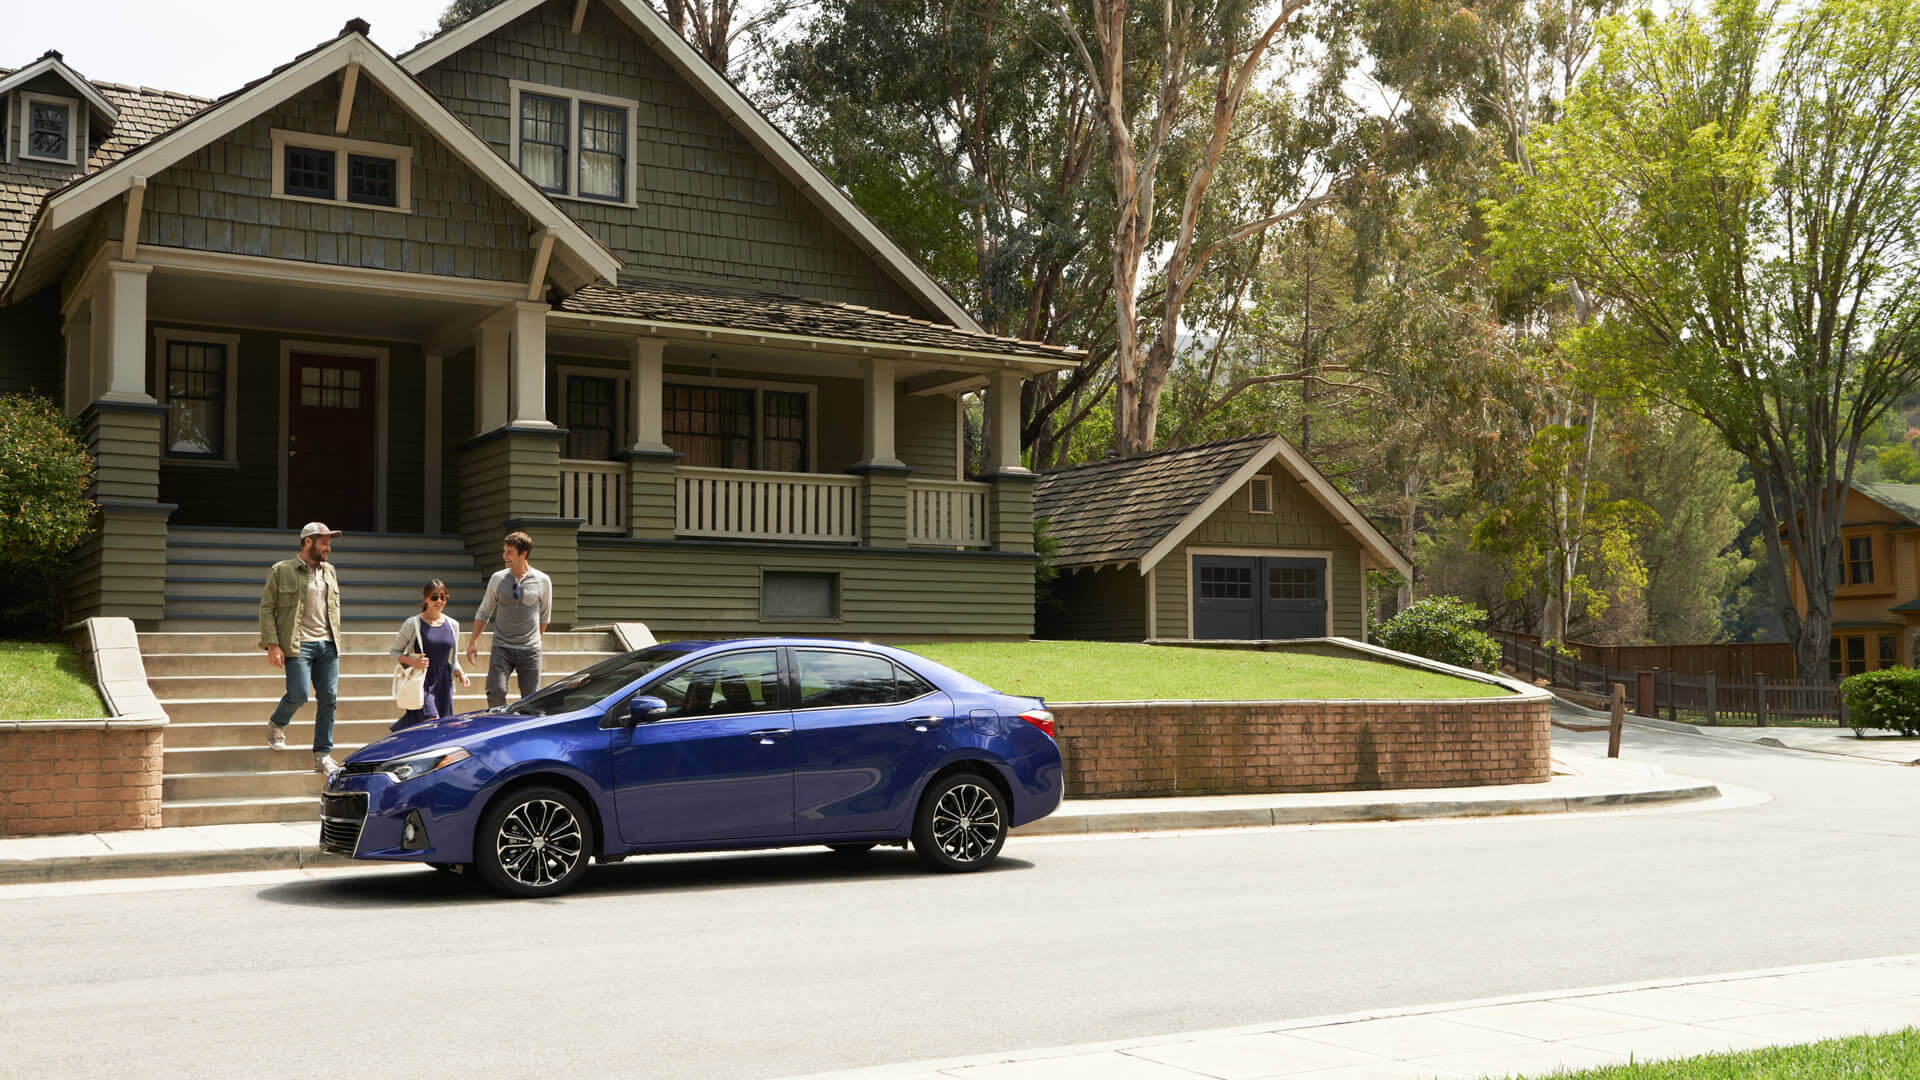 2016 Toyota Corolla blue exterior model parked